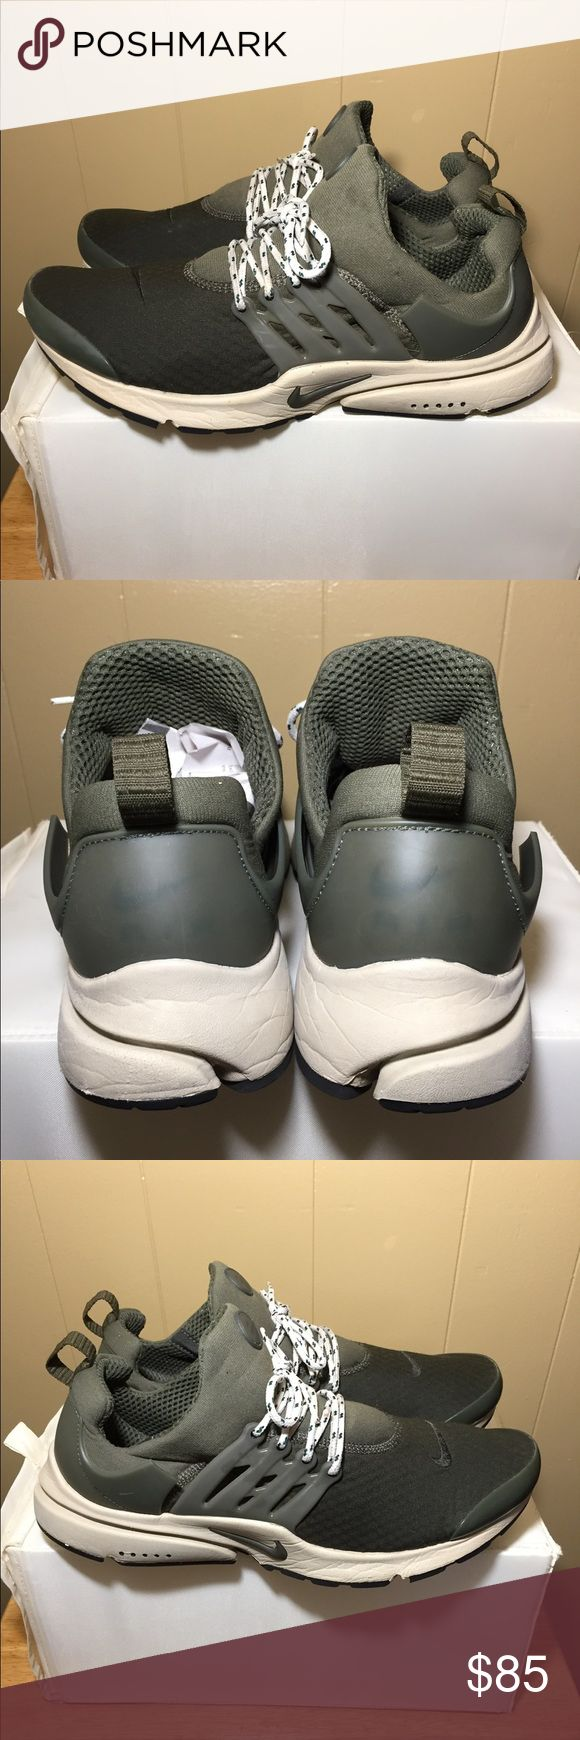 """Nike Air Presto Essential """"cargo khaki"""" - mens size:11.  👉🏽PRICE IS FIRM👈🏽 -colorway:Cargo Khaki/Rattan/Black/Cargo Khaki -stylecode:848187 301 -Release Date:2016 -condition:slight signs of wear(replacement laces-don't have the original ones comrs with both sets seen in pics)top hole strap is cut⬅️ -NO BOX⬅️ -100% authentic⬅️ -🚫no trades🚫 -PRICE IS FIRM-NO OFFERS-⬅️ -sold as is!!!please look at all pictures and ask questions before buying shoes ⬅️ -irrelevant comments will get you…"""